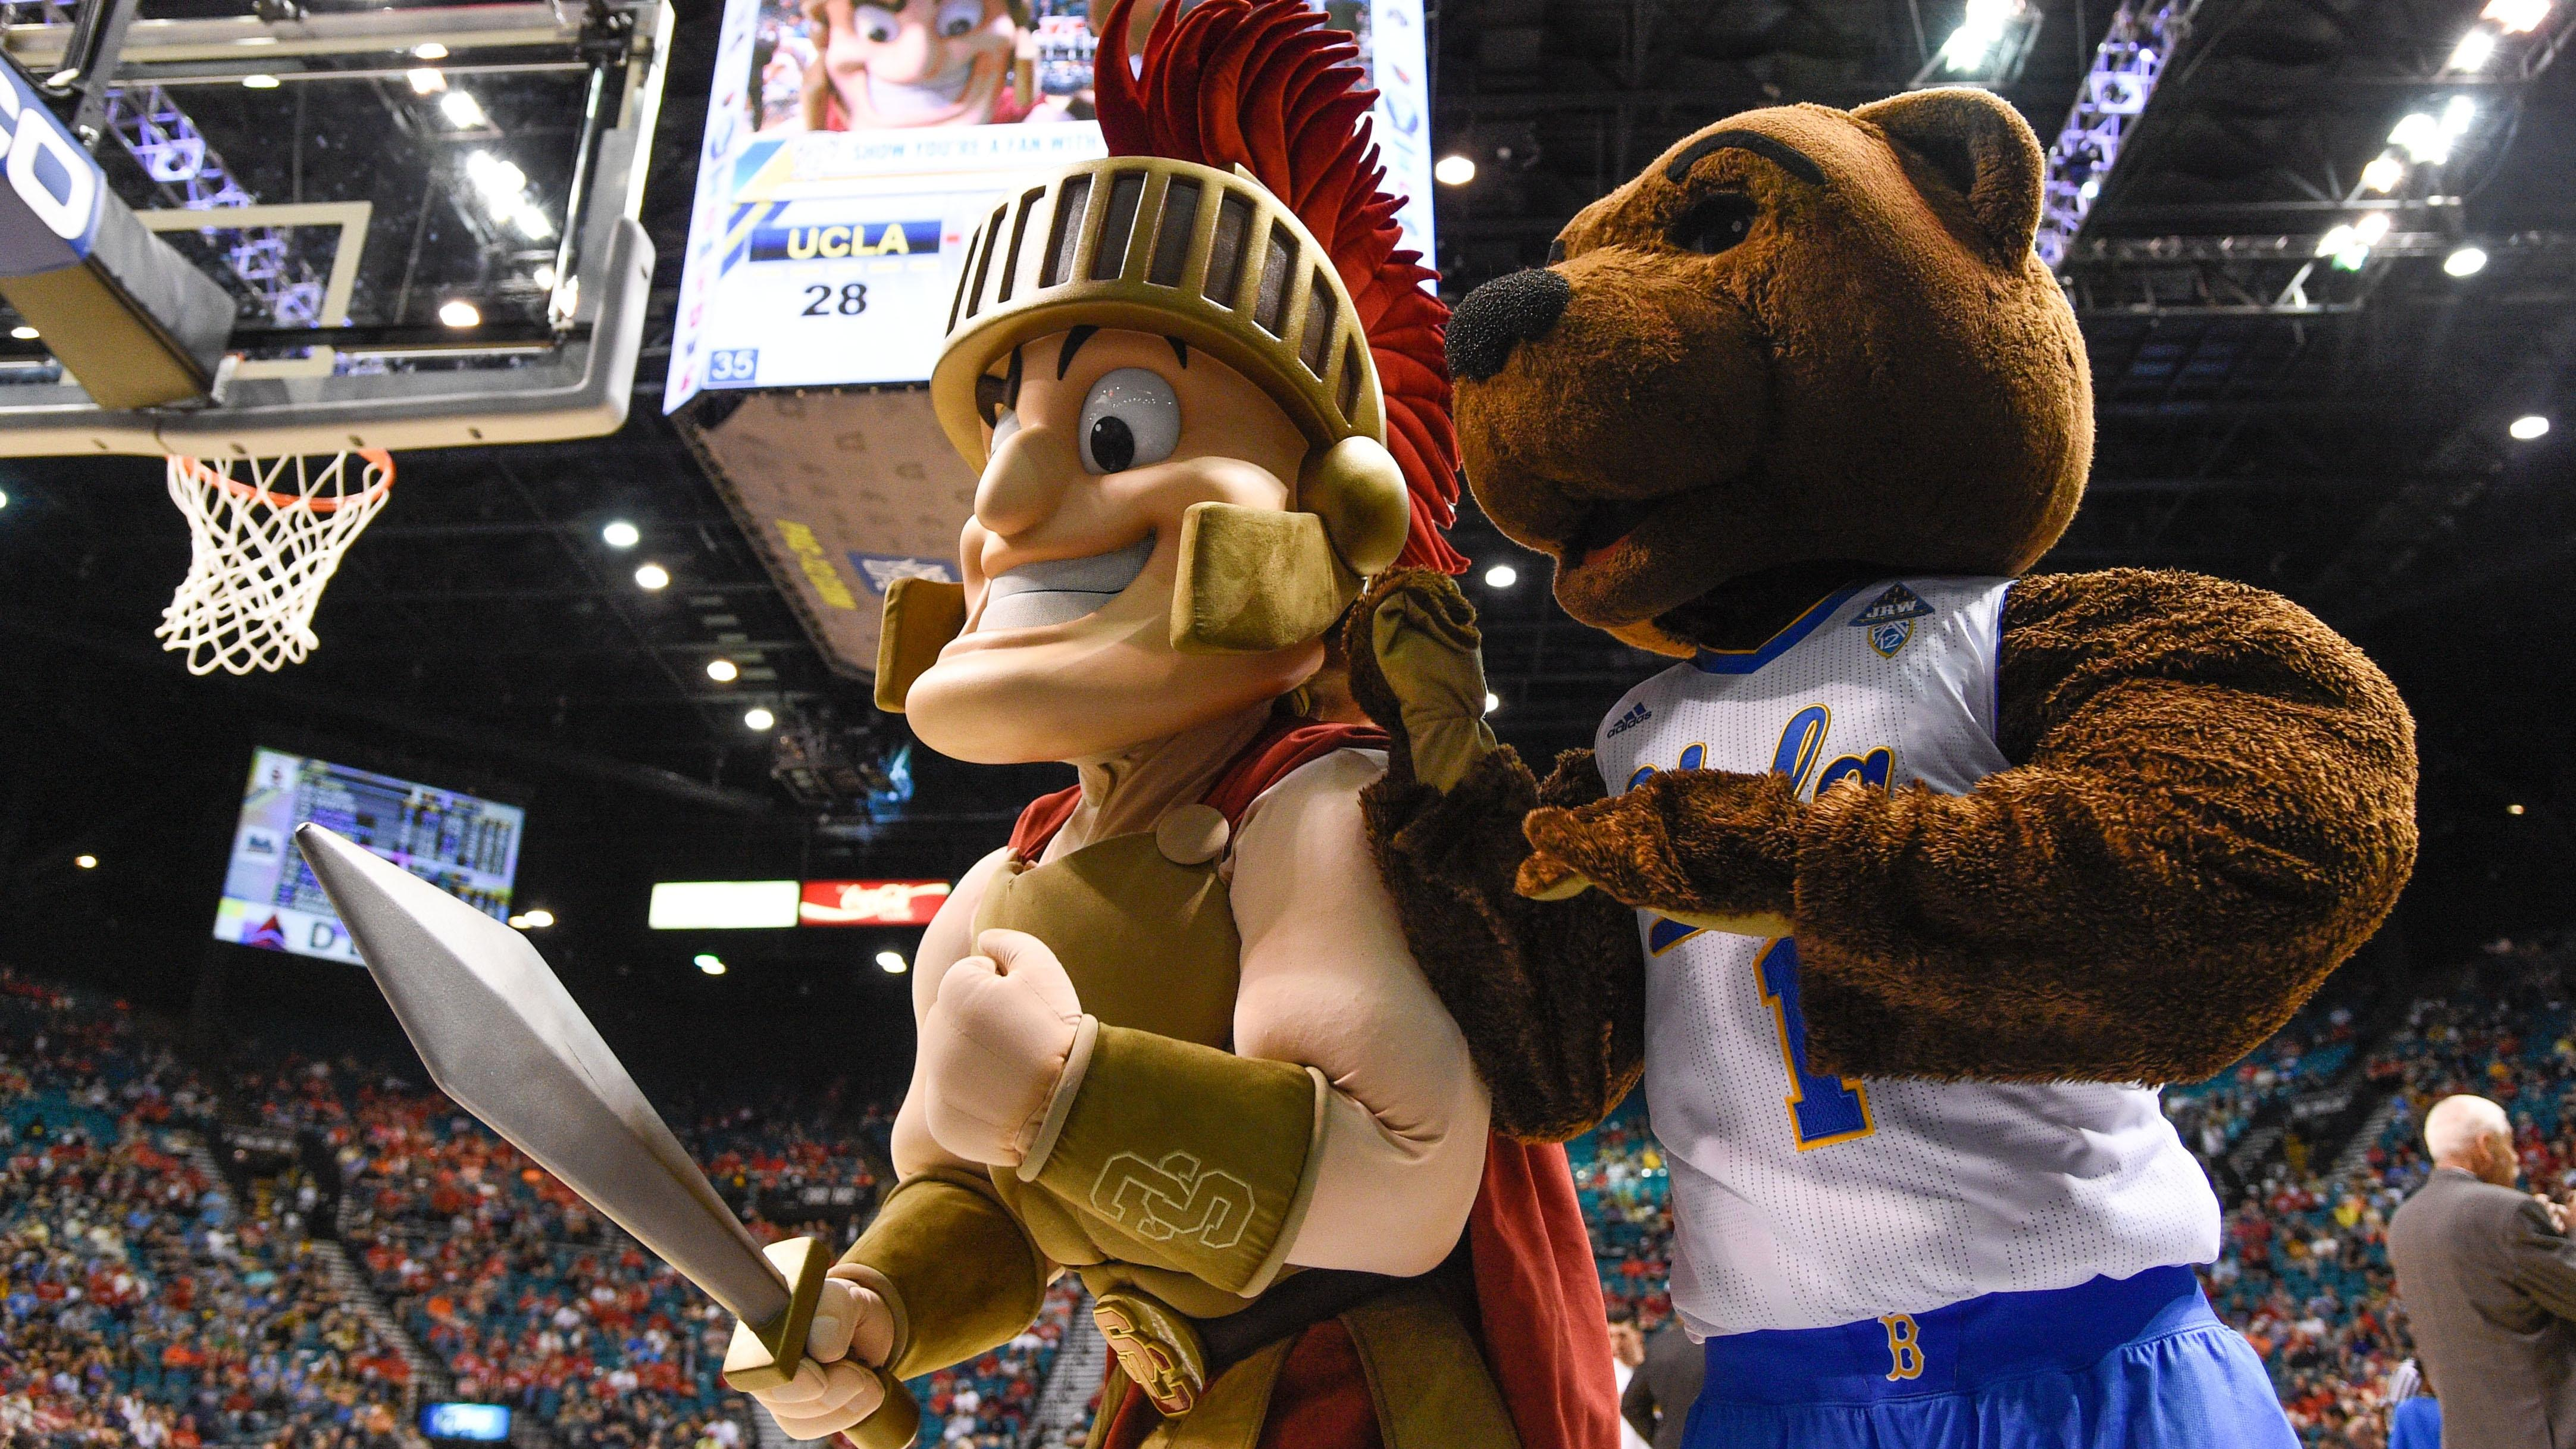 The mascots for USC and UCLA pose at a basketball game.